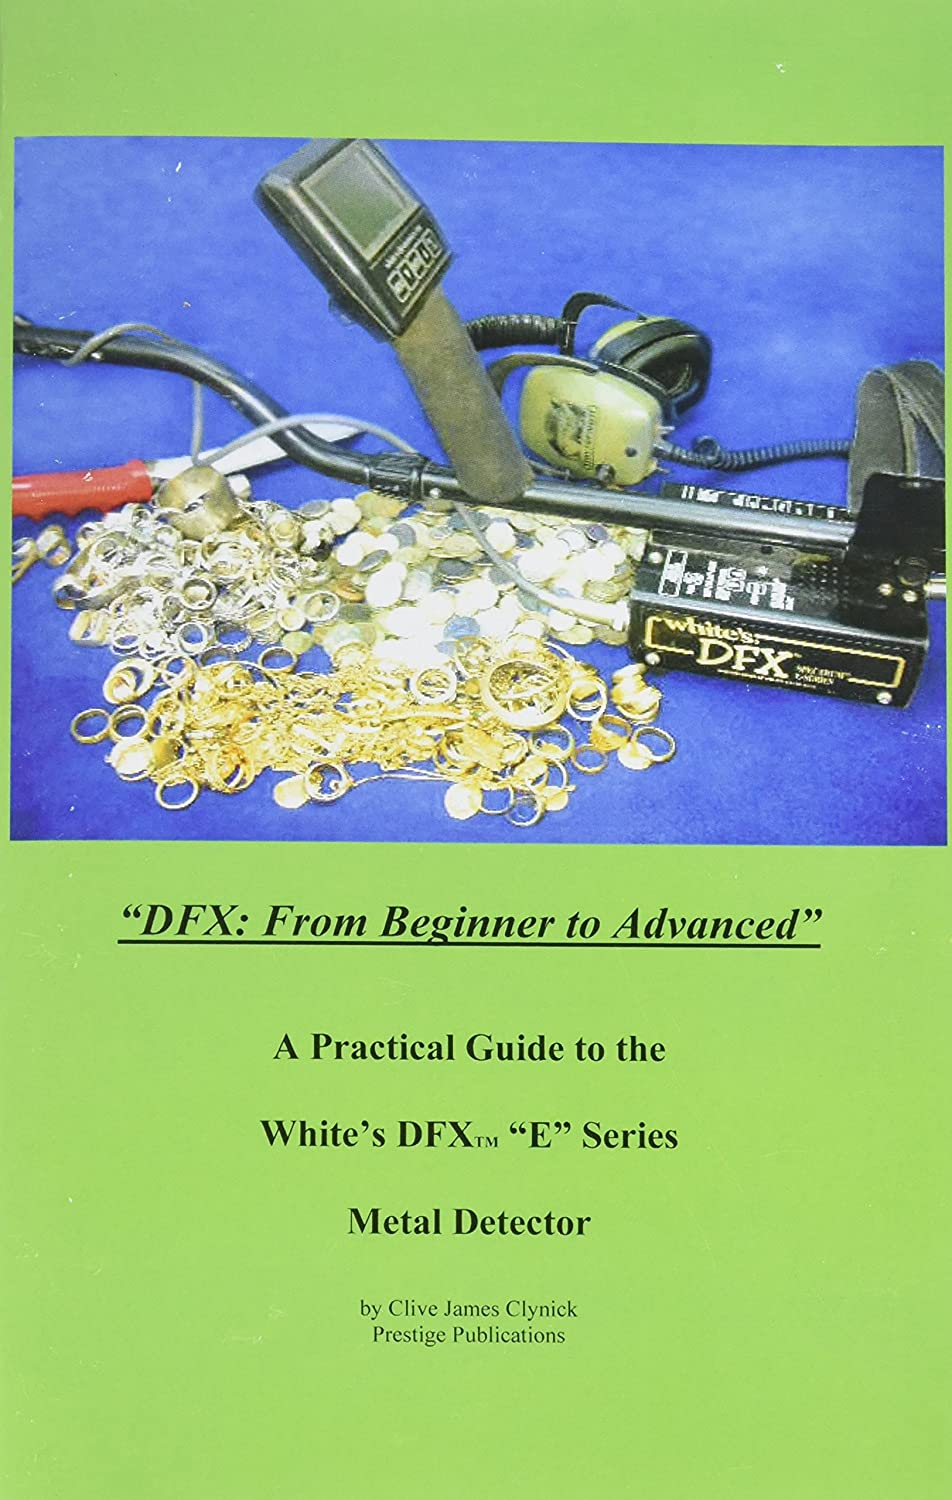 """DFX: From Beginner to Advanced"" A Practical Guide to the Whites DFX ""E"" Series TM Metal Detector"" by Clive Clynick"